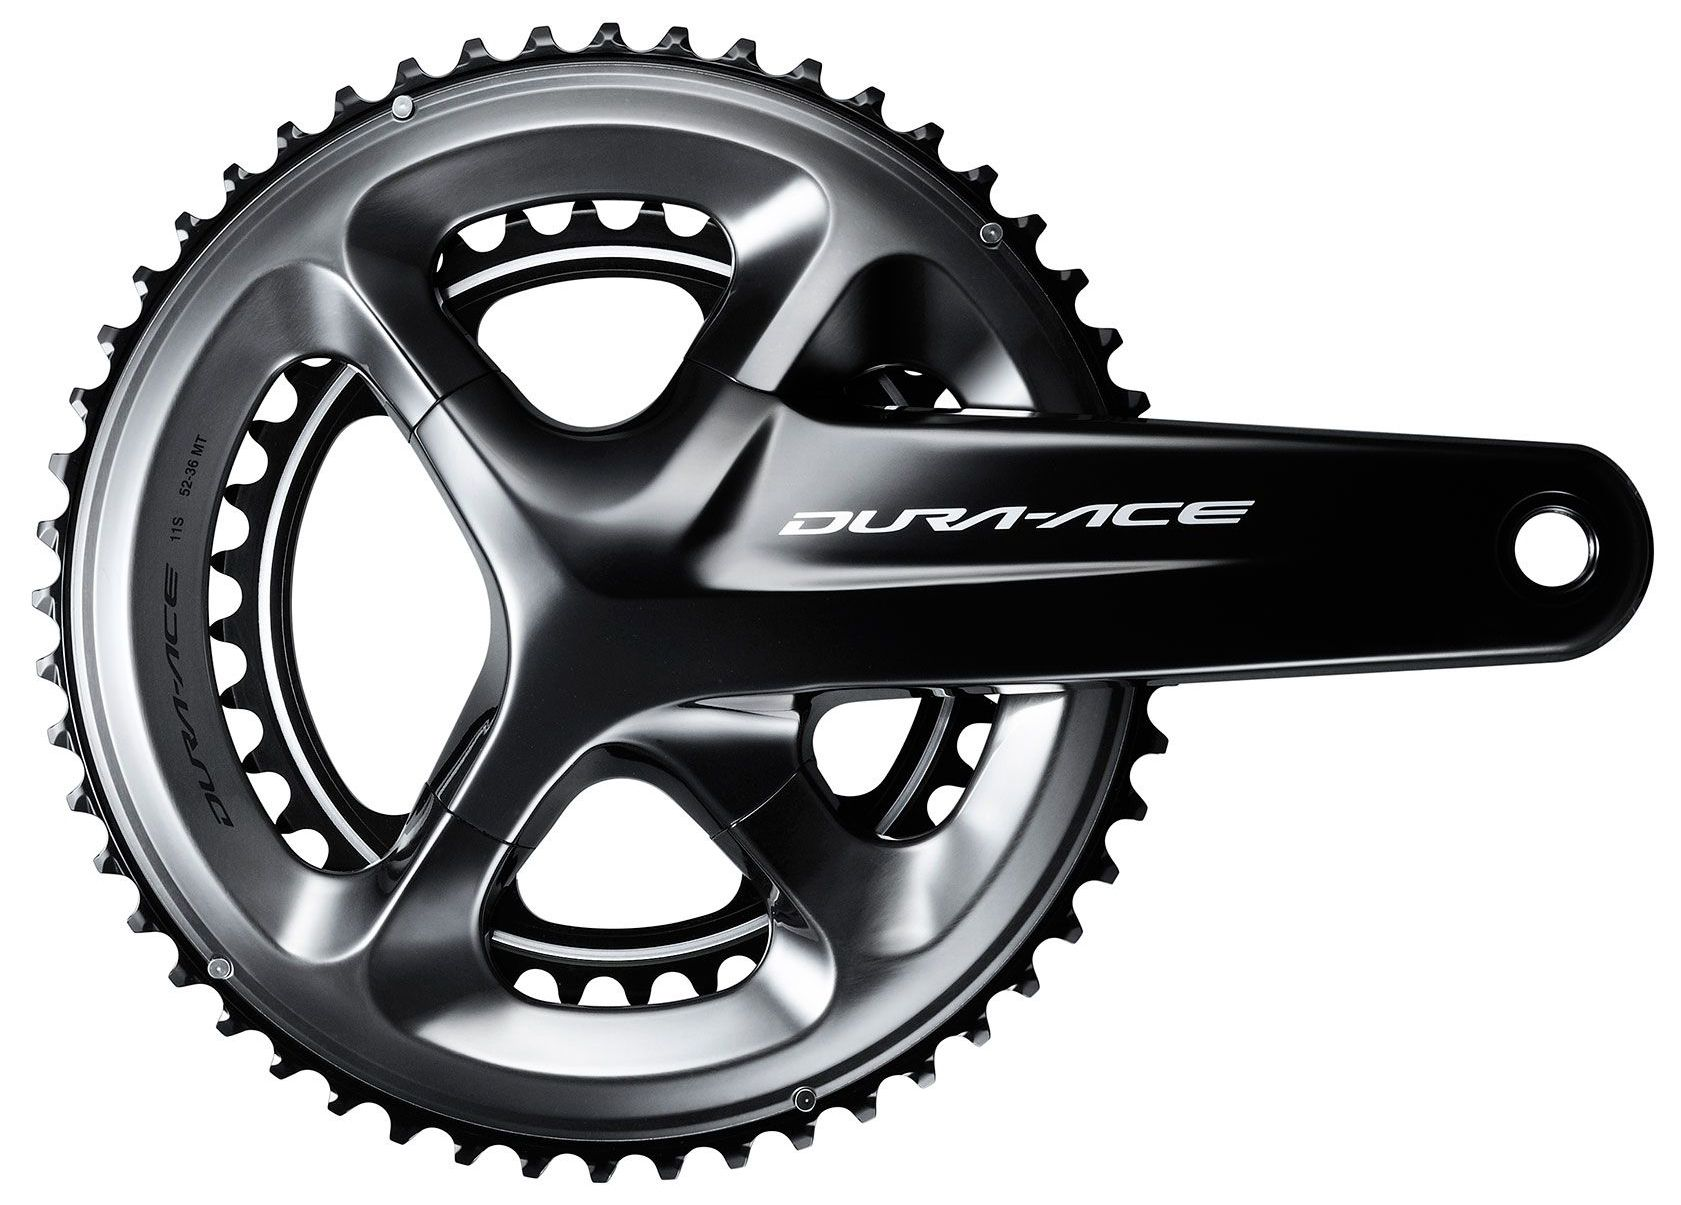 Запчасть Shimano Dura-Ace R9100-P (IFCR9100PCX04) велосипед specialized s works venge dura ace 2015